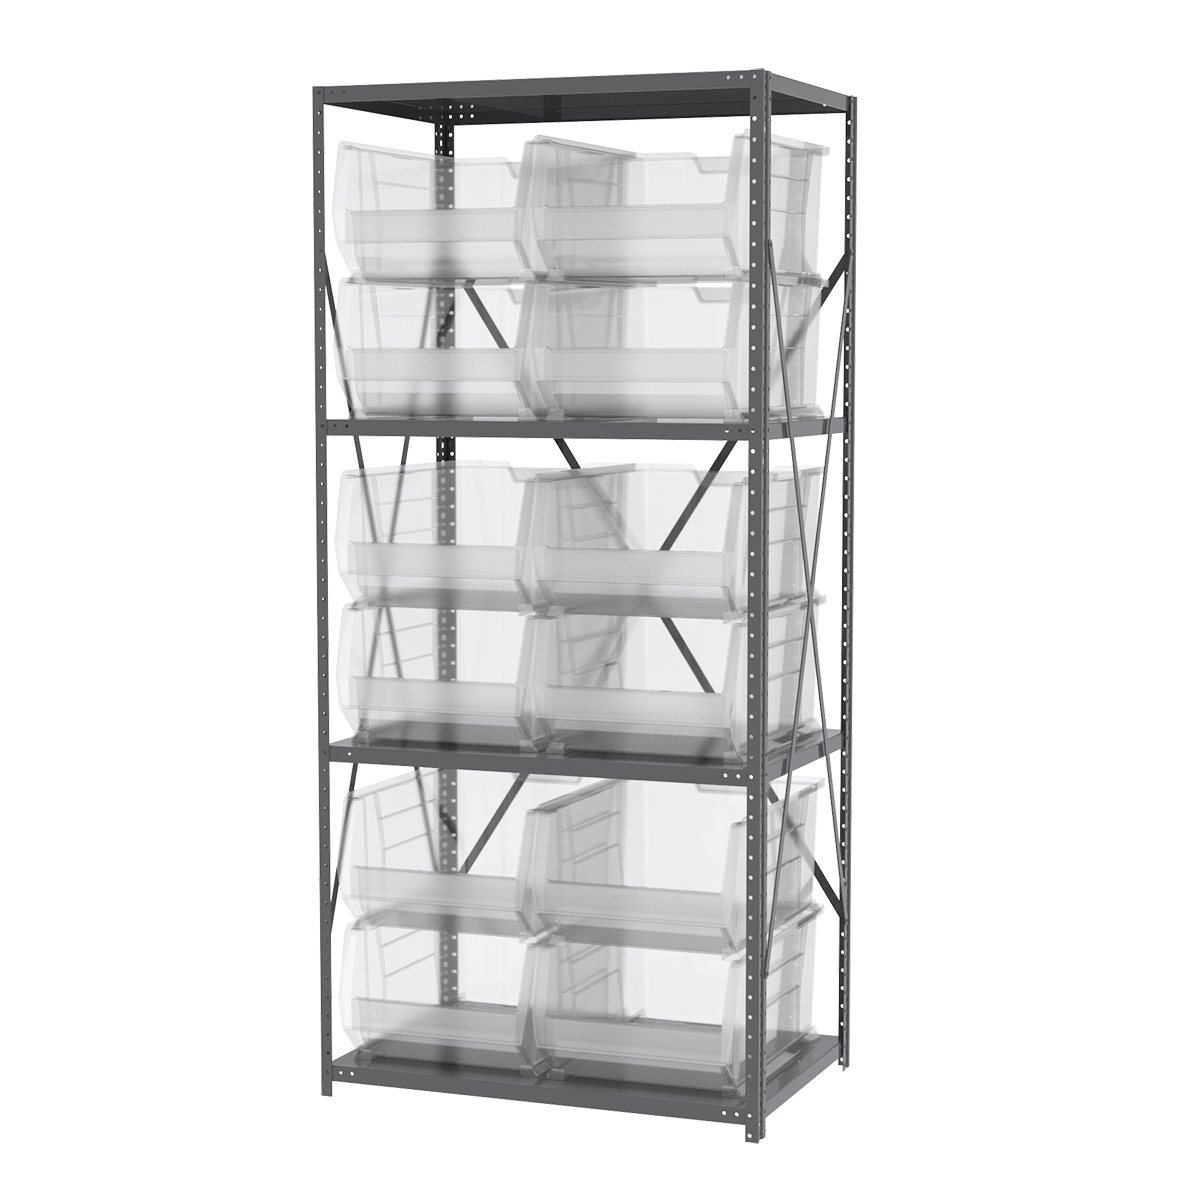 Steel Shelving Kit, 24x36x79, 12 Bins, Gray/Clear.  This item sold in carton quantities of 1.